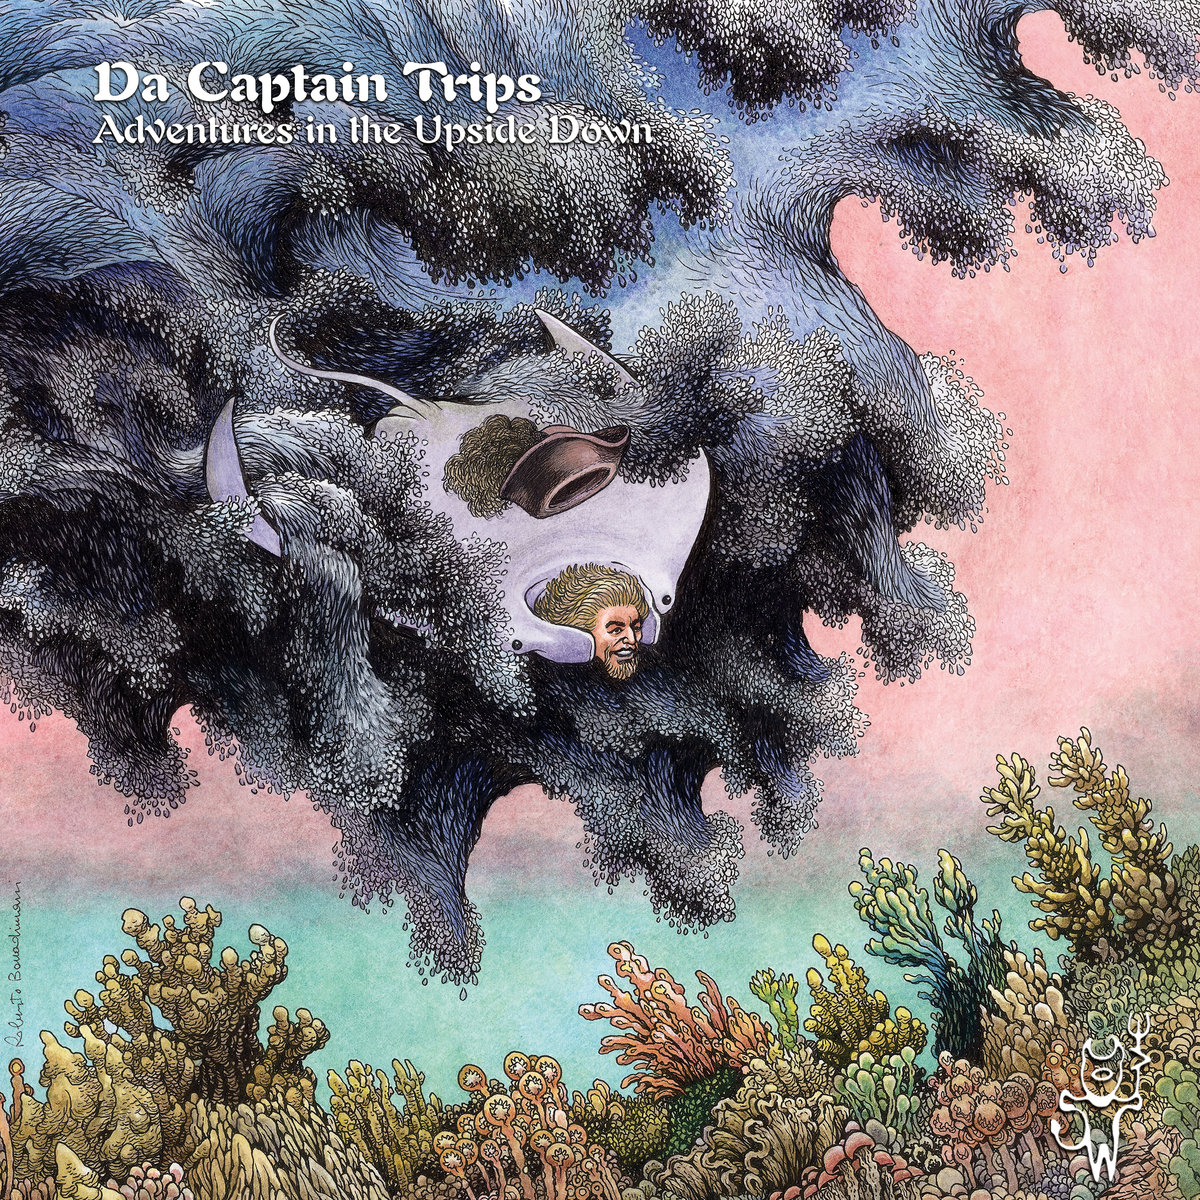 Strange Things Are Happening: DA CAPTAIN TRIPS